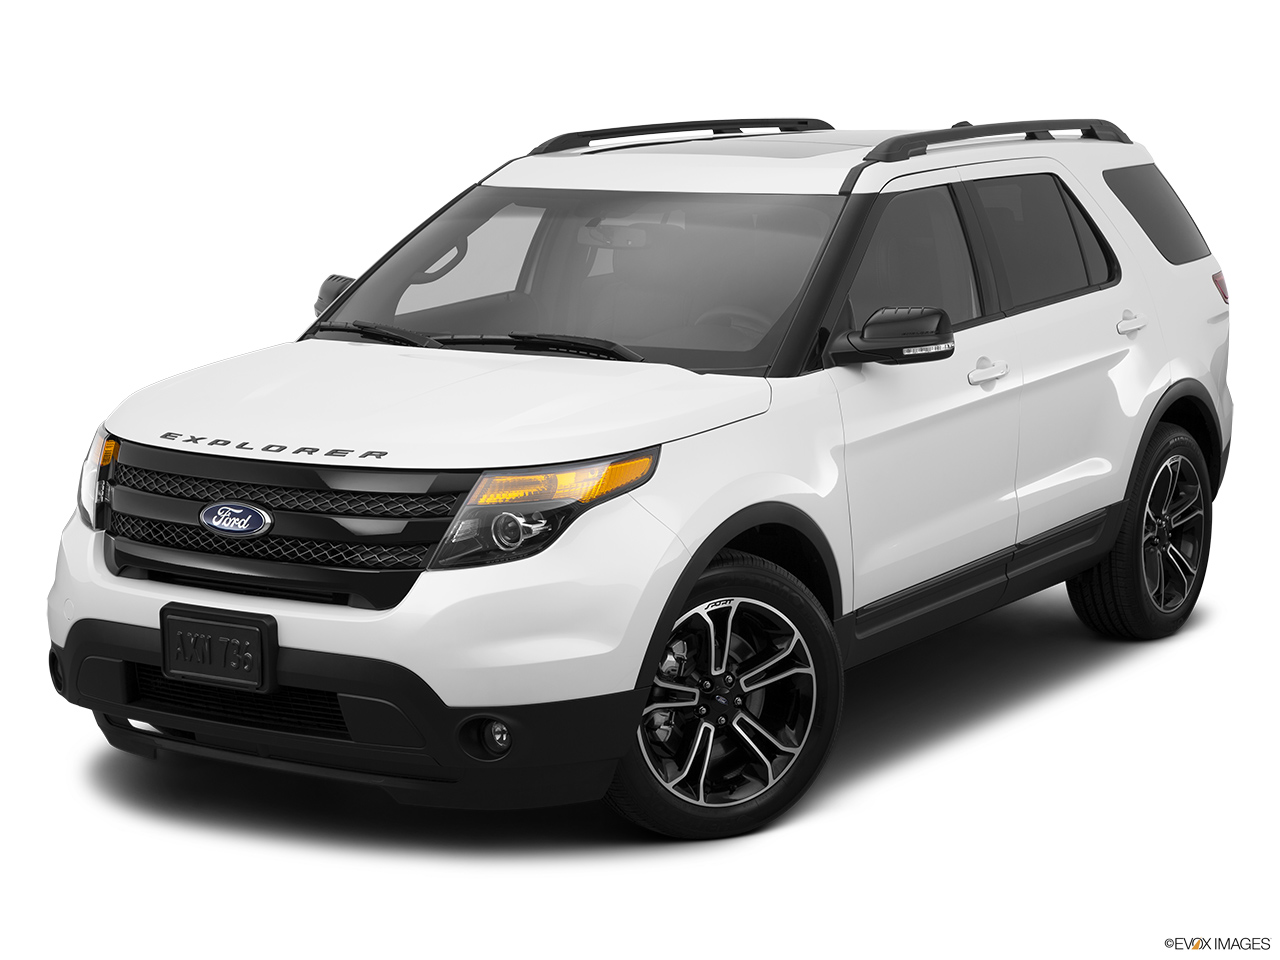 2015 ford explorer 4wd 4 door sport front angle view - 2016 Ford Explorer Sport White